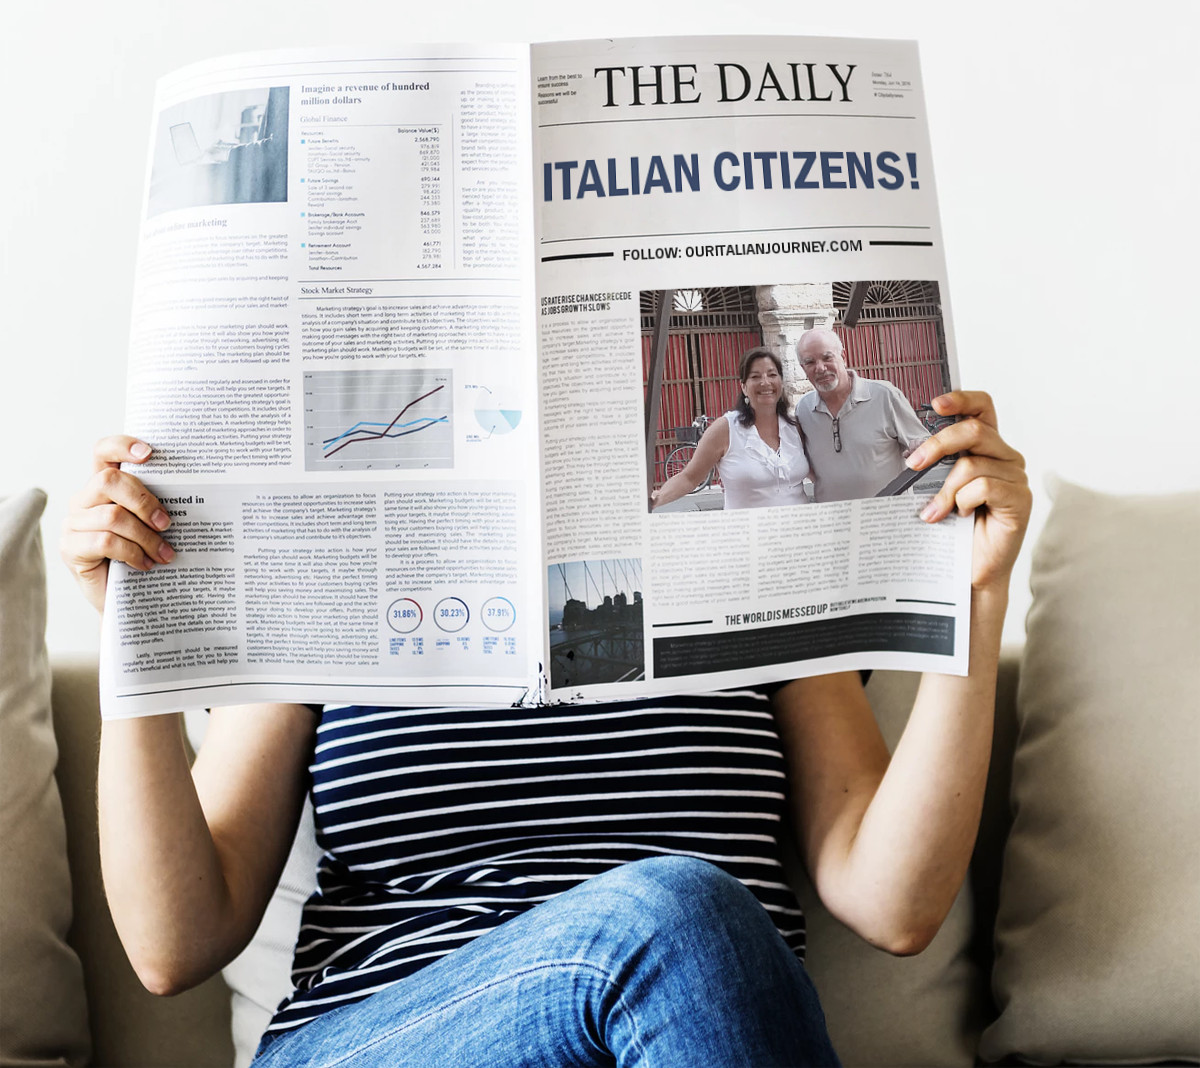 citizenship and passport, ouritalianjourney.com